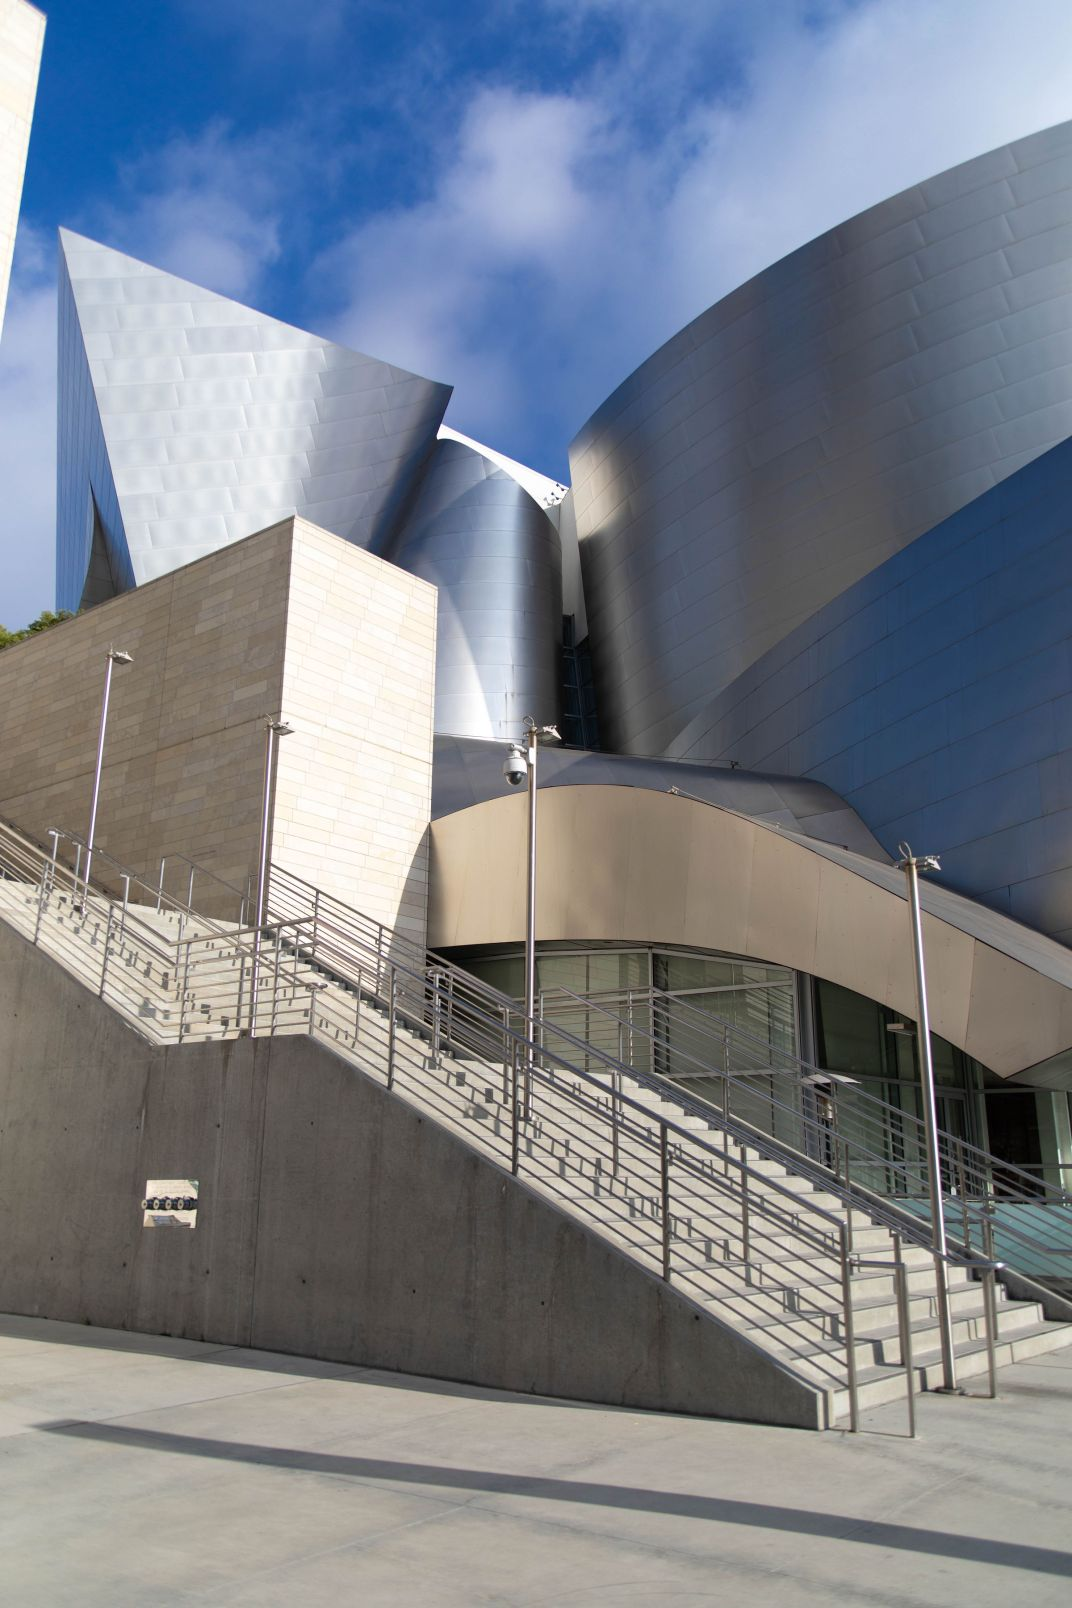 Los Angeles: The Complete Traveler's Guide by Annie Fairfax Walt Disney Concert Hall Cool LA Buildings